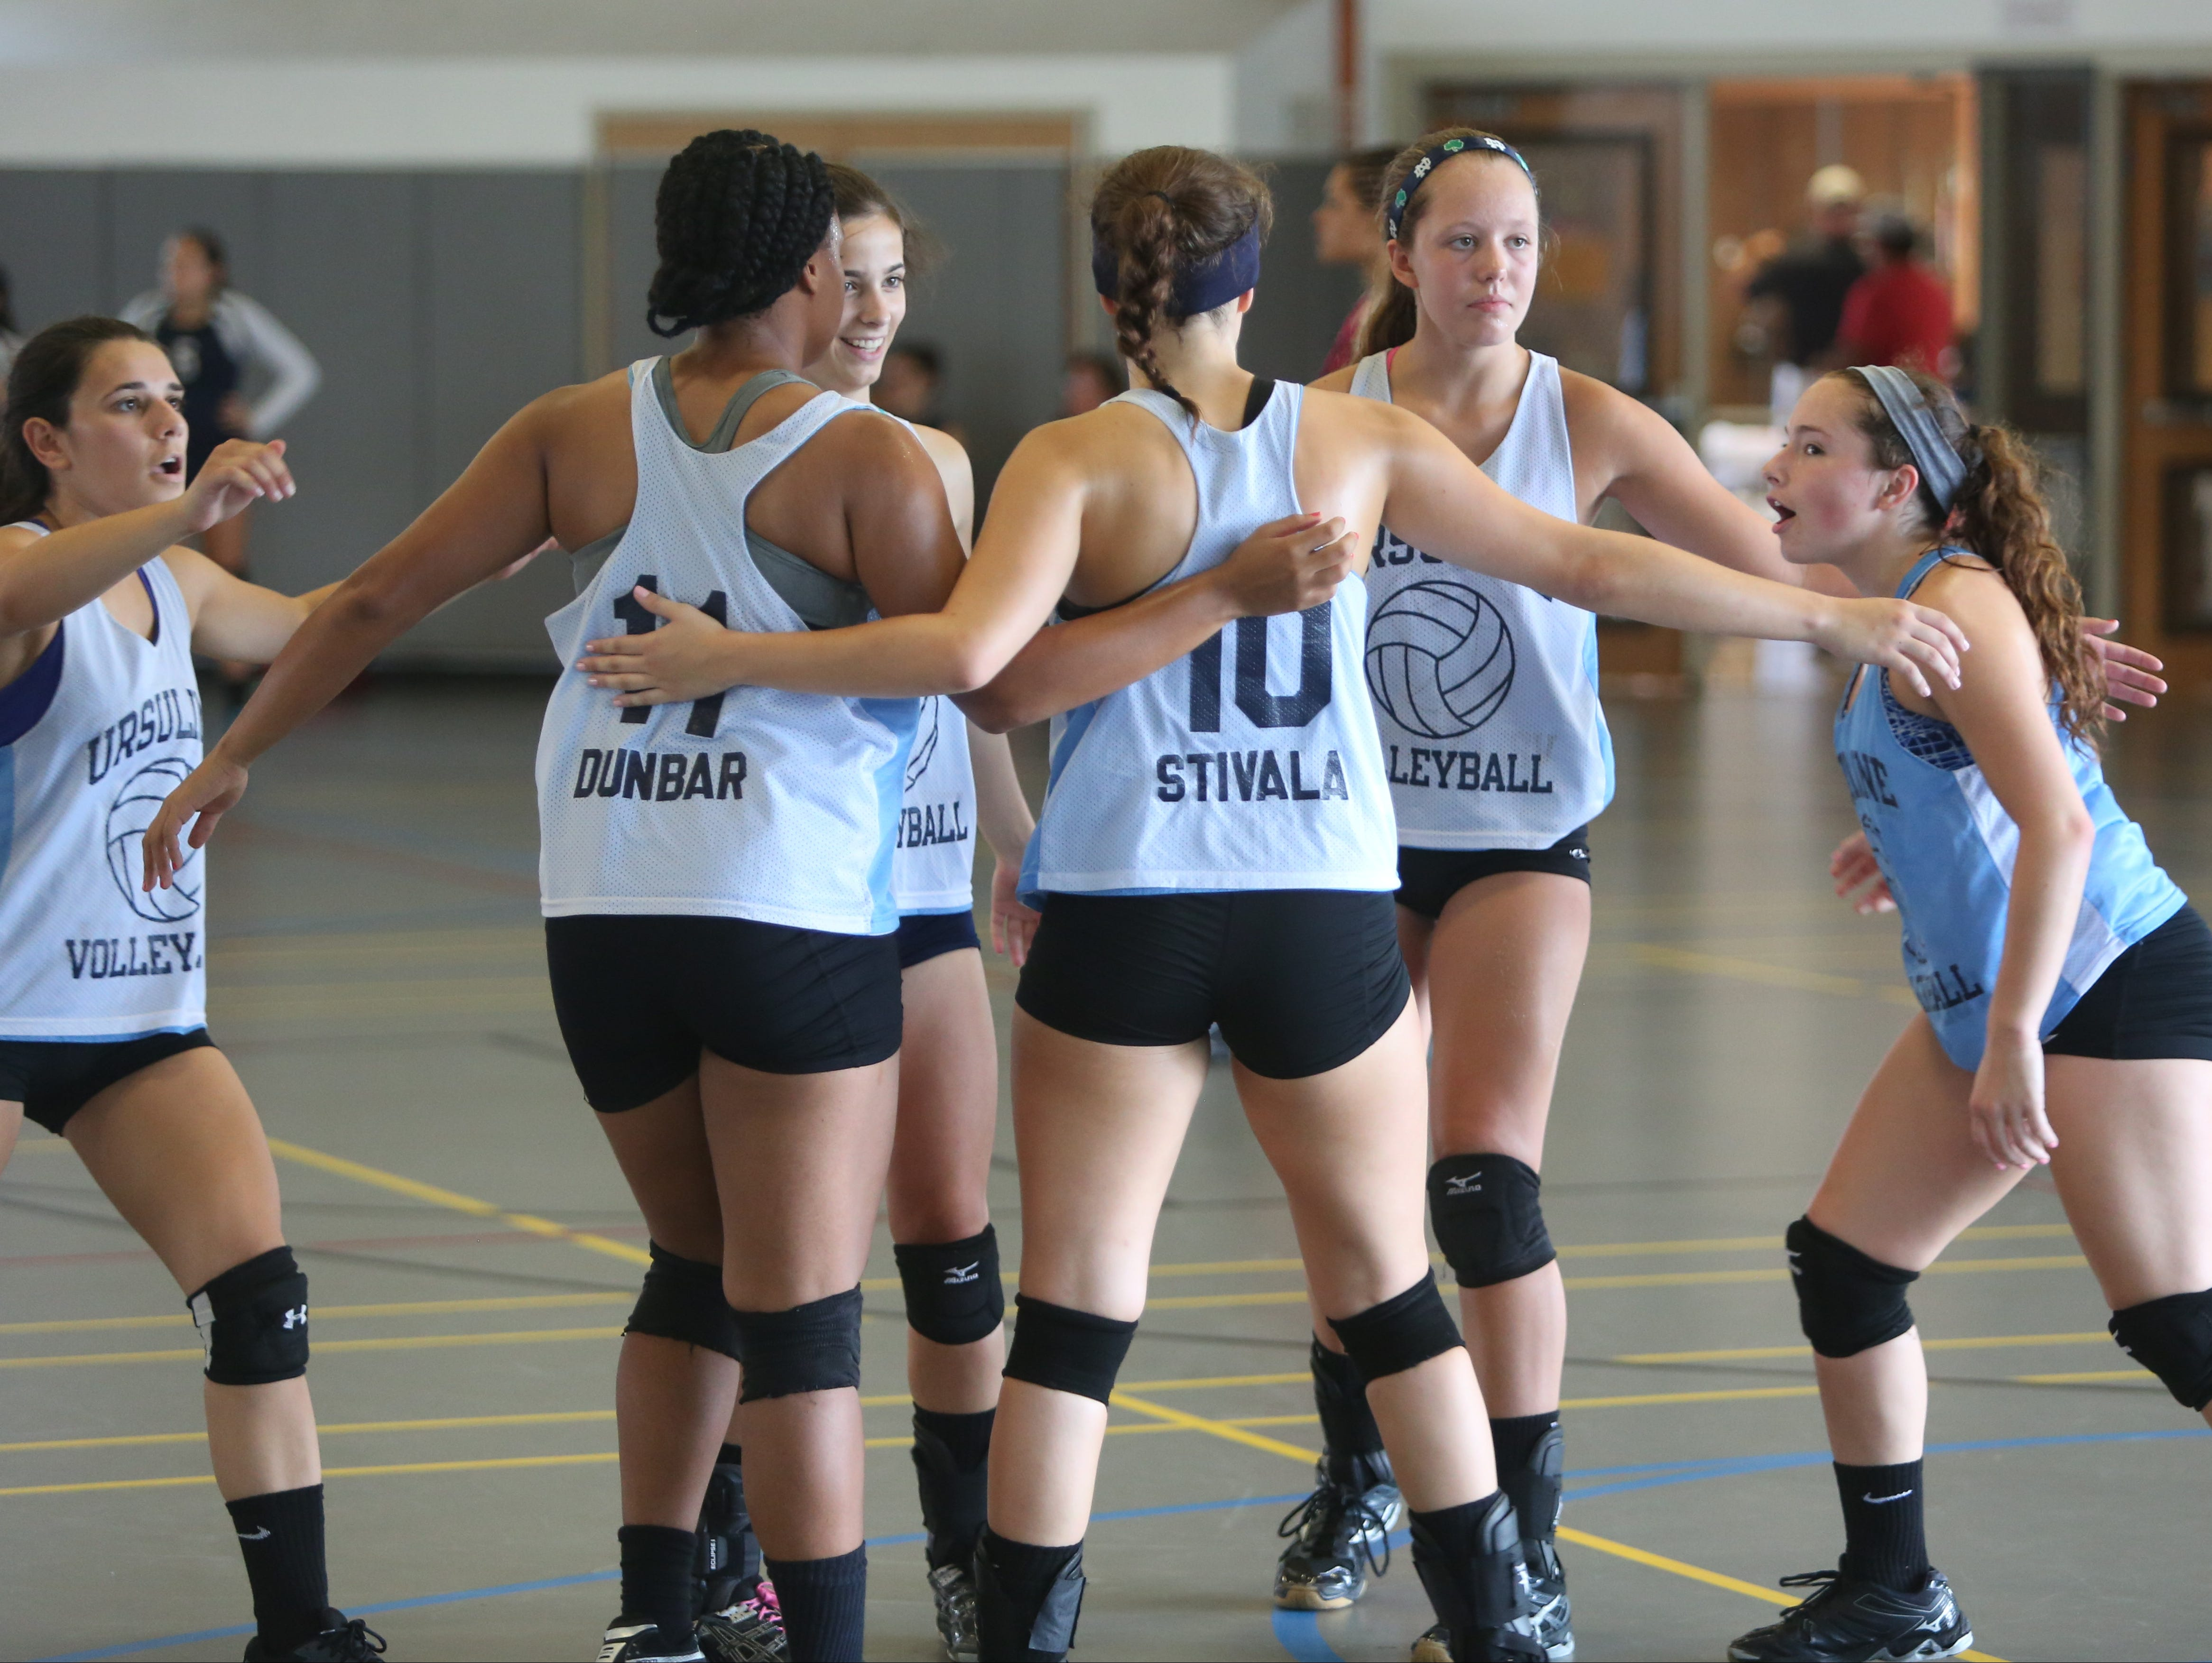 The Ursuline School celebrate a point against Ossining High School, during the Breast Cancer Awareness tournament at Hendrick Hudson High School in Montrose, Sept, 10, 2016.